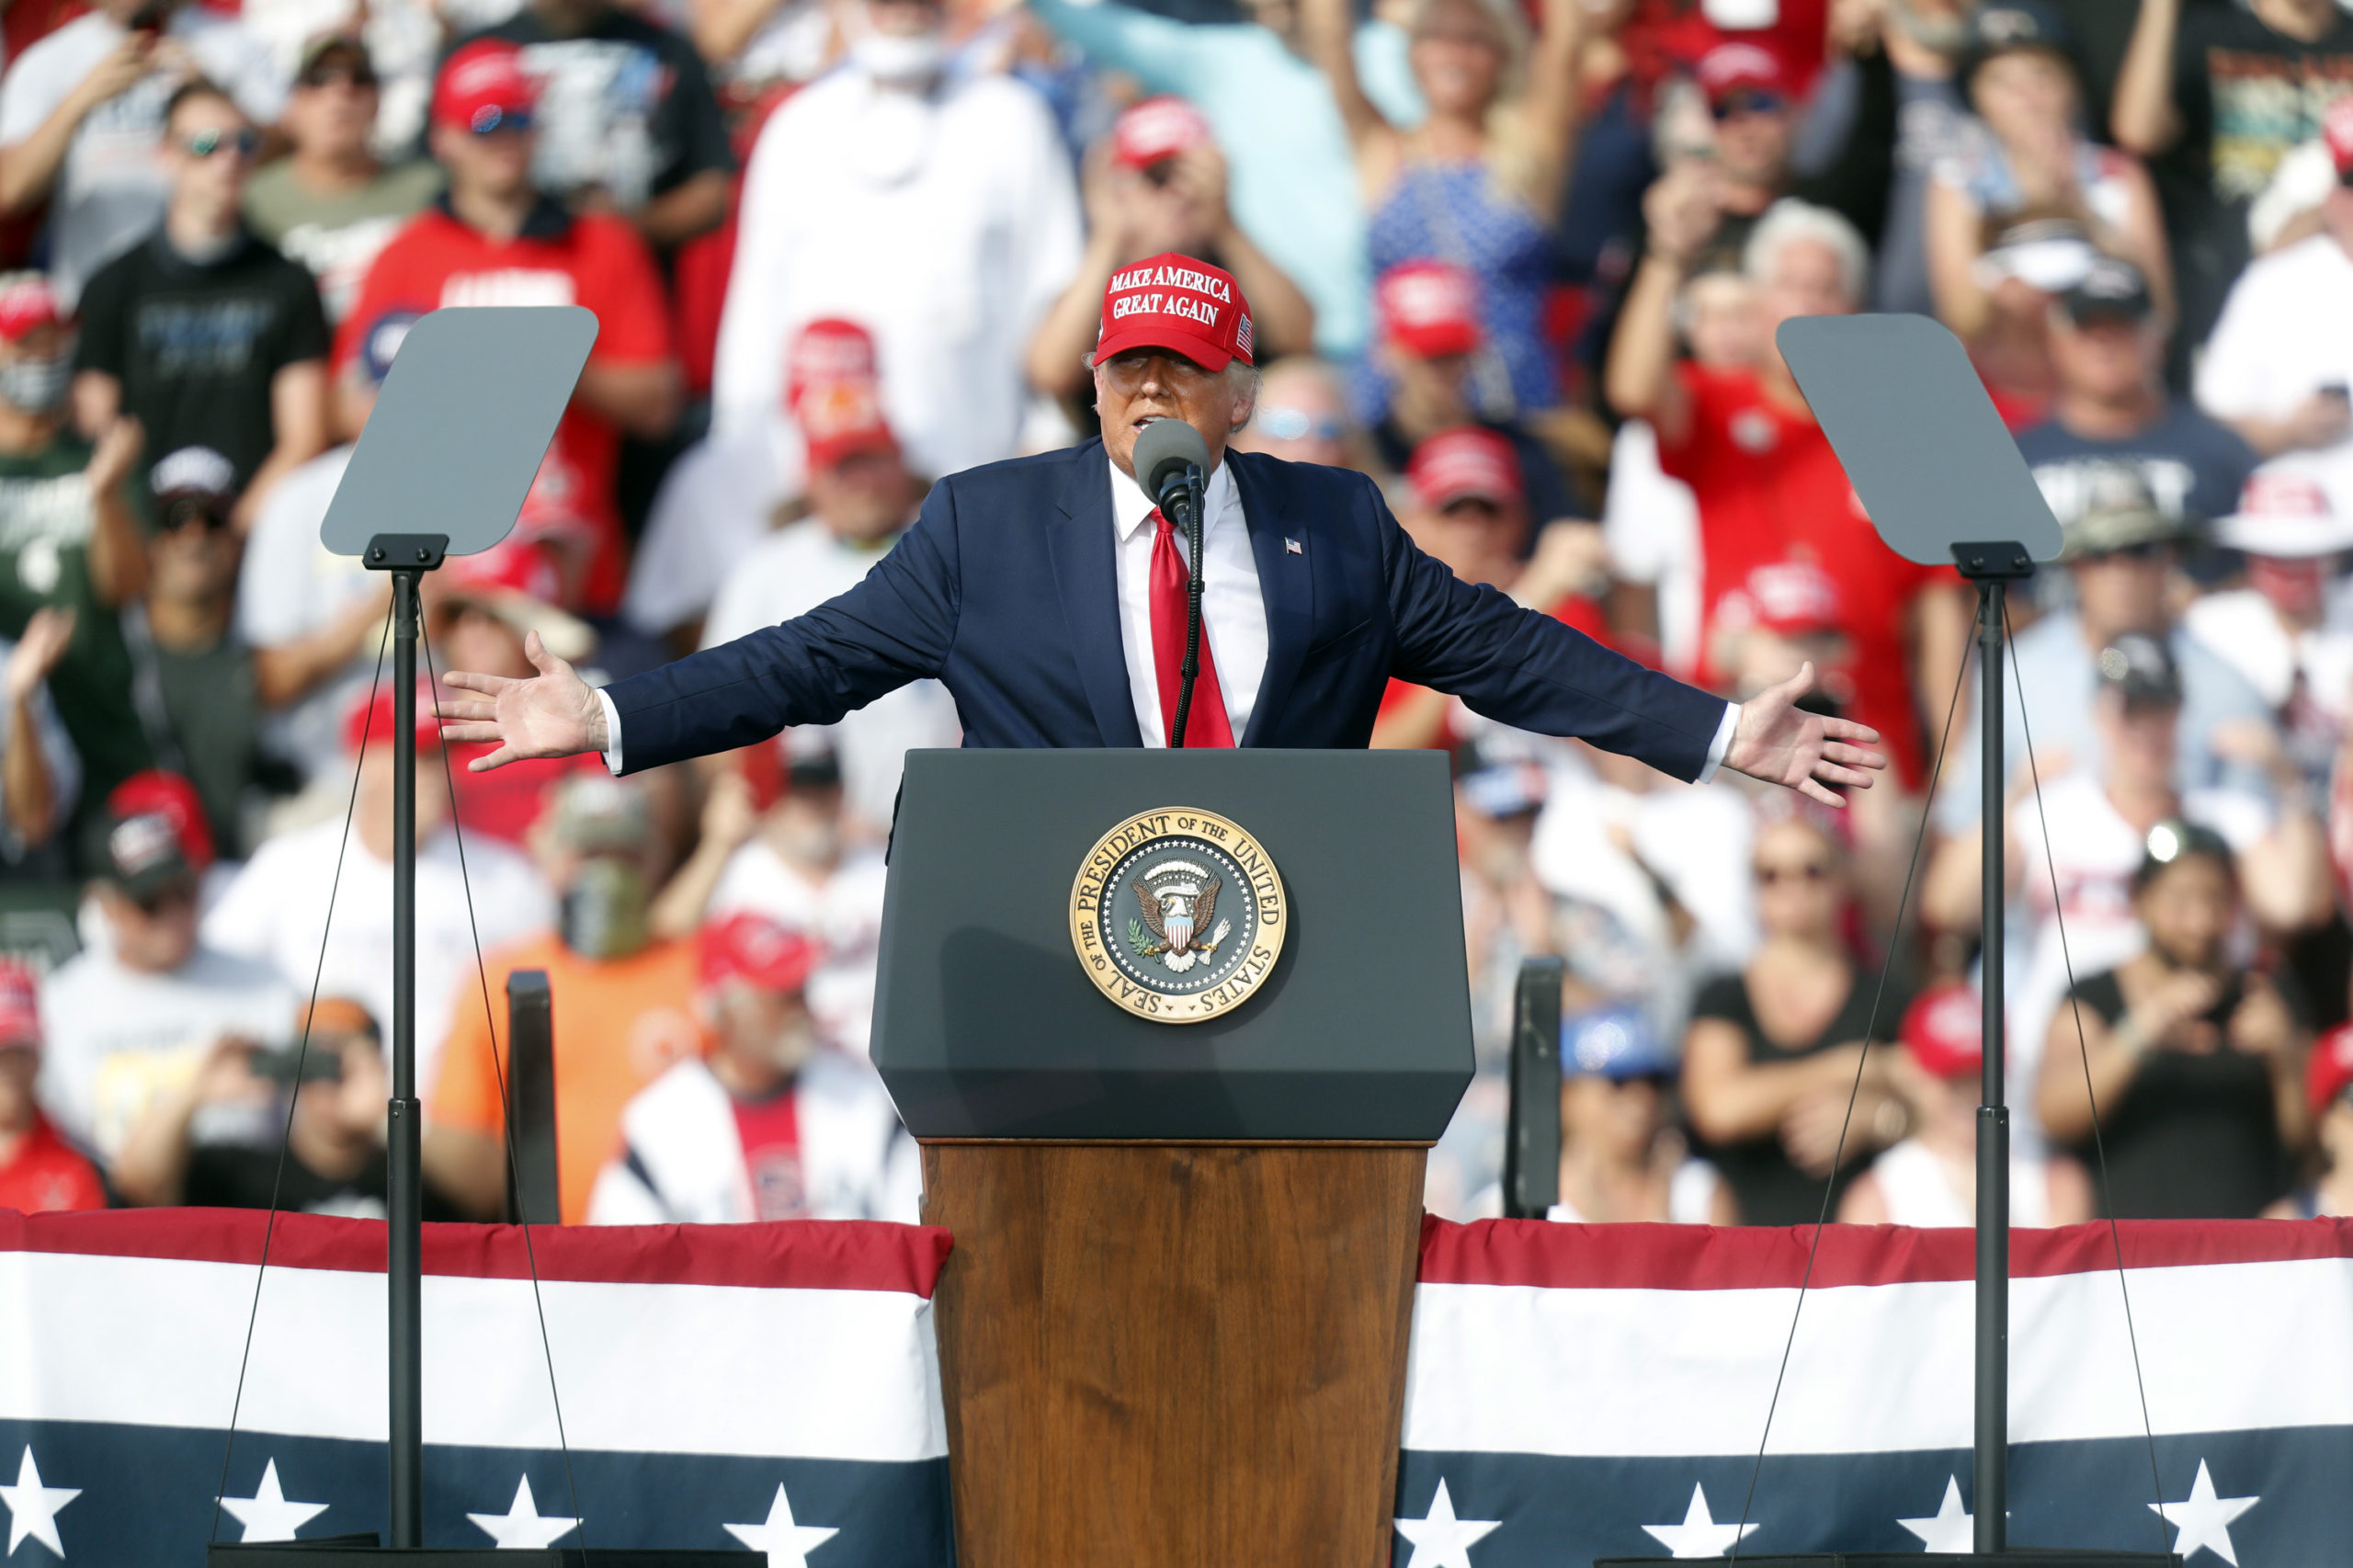 President Donald Trump gives a campaign speech on Oct. 29 in Tampa, Florida. (Octavio Jones/Getty Images)